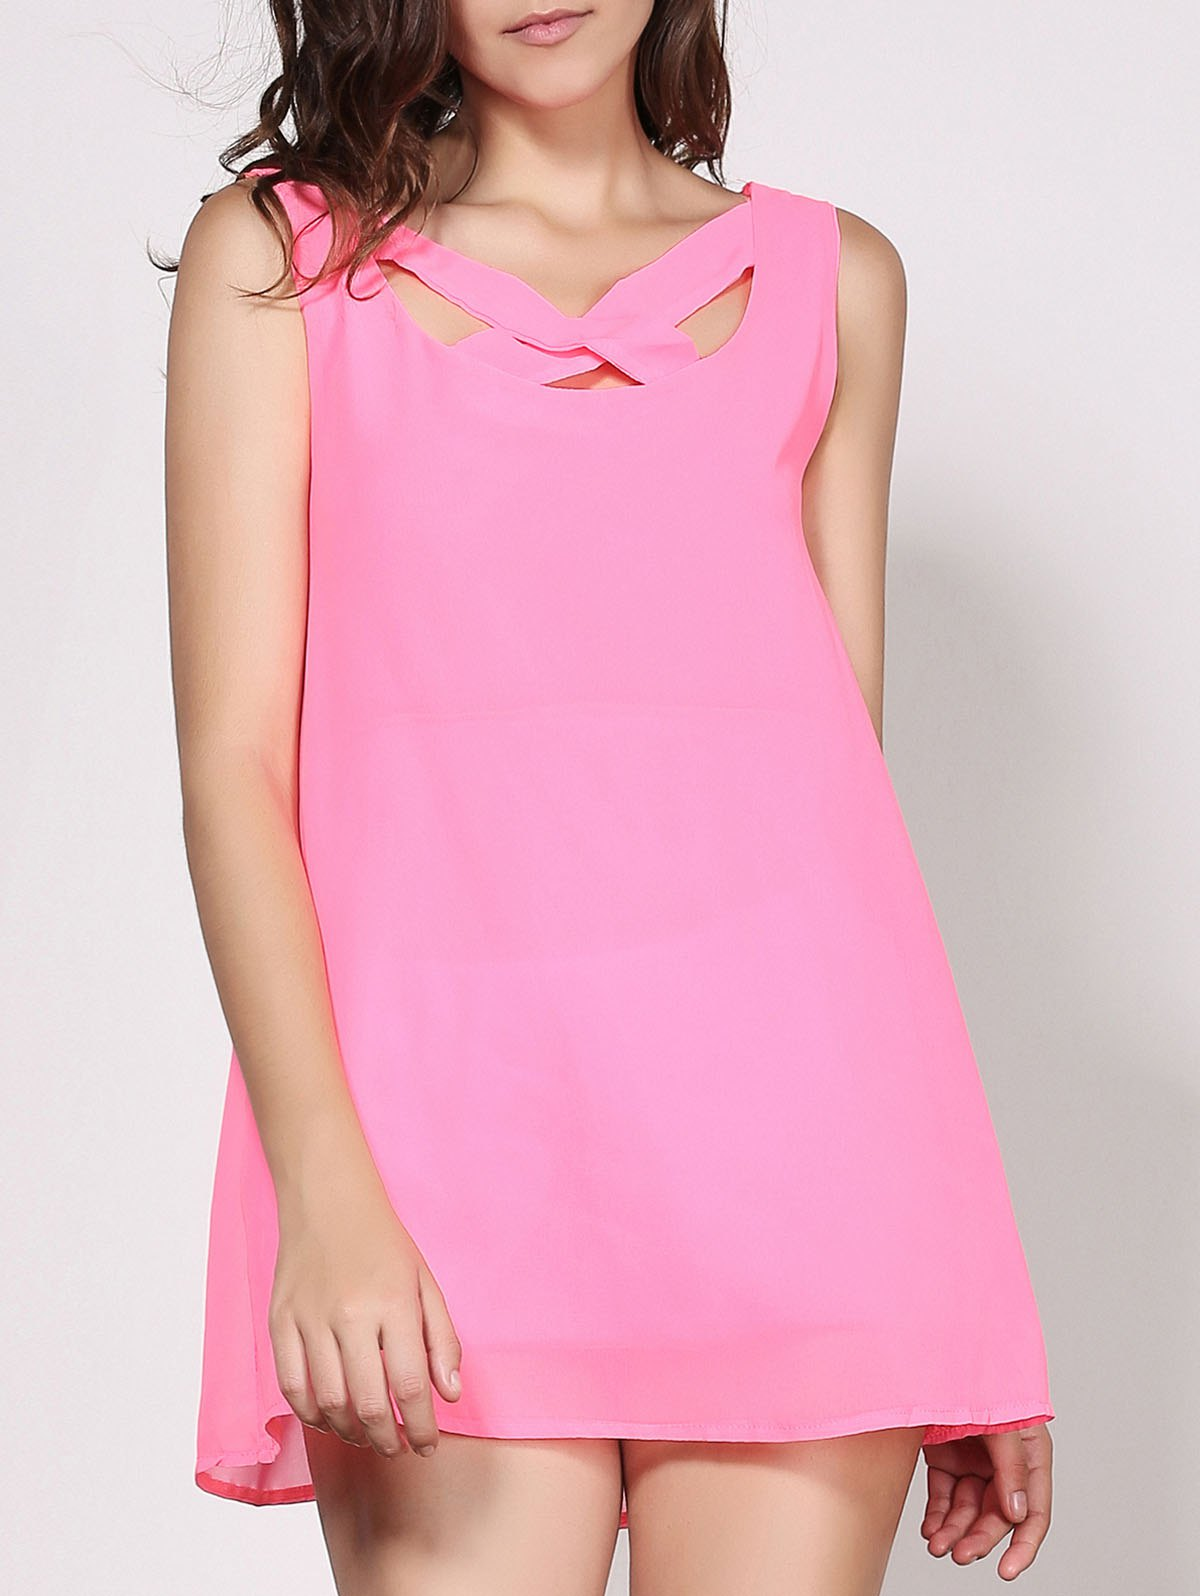 Sexy V-Neck Sleeveless Solid Color Cut Out Women's Dress - PINK S